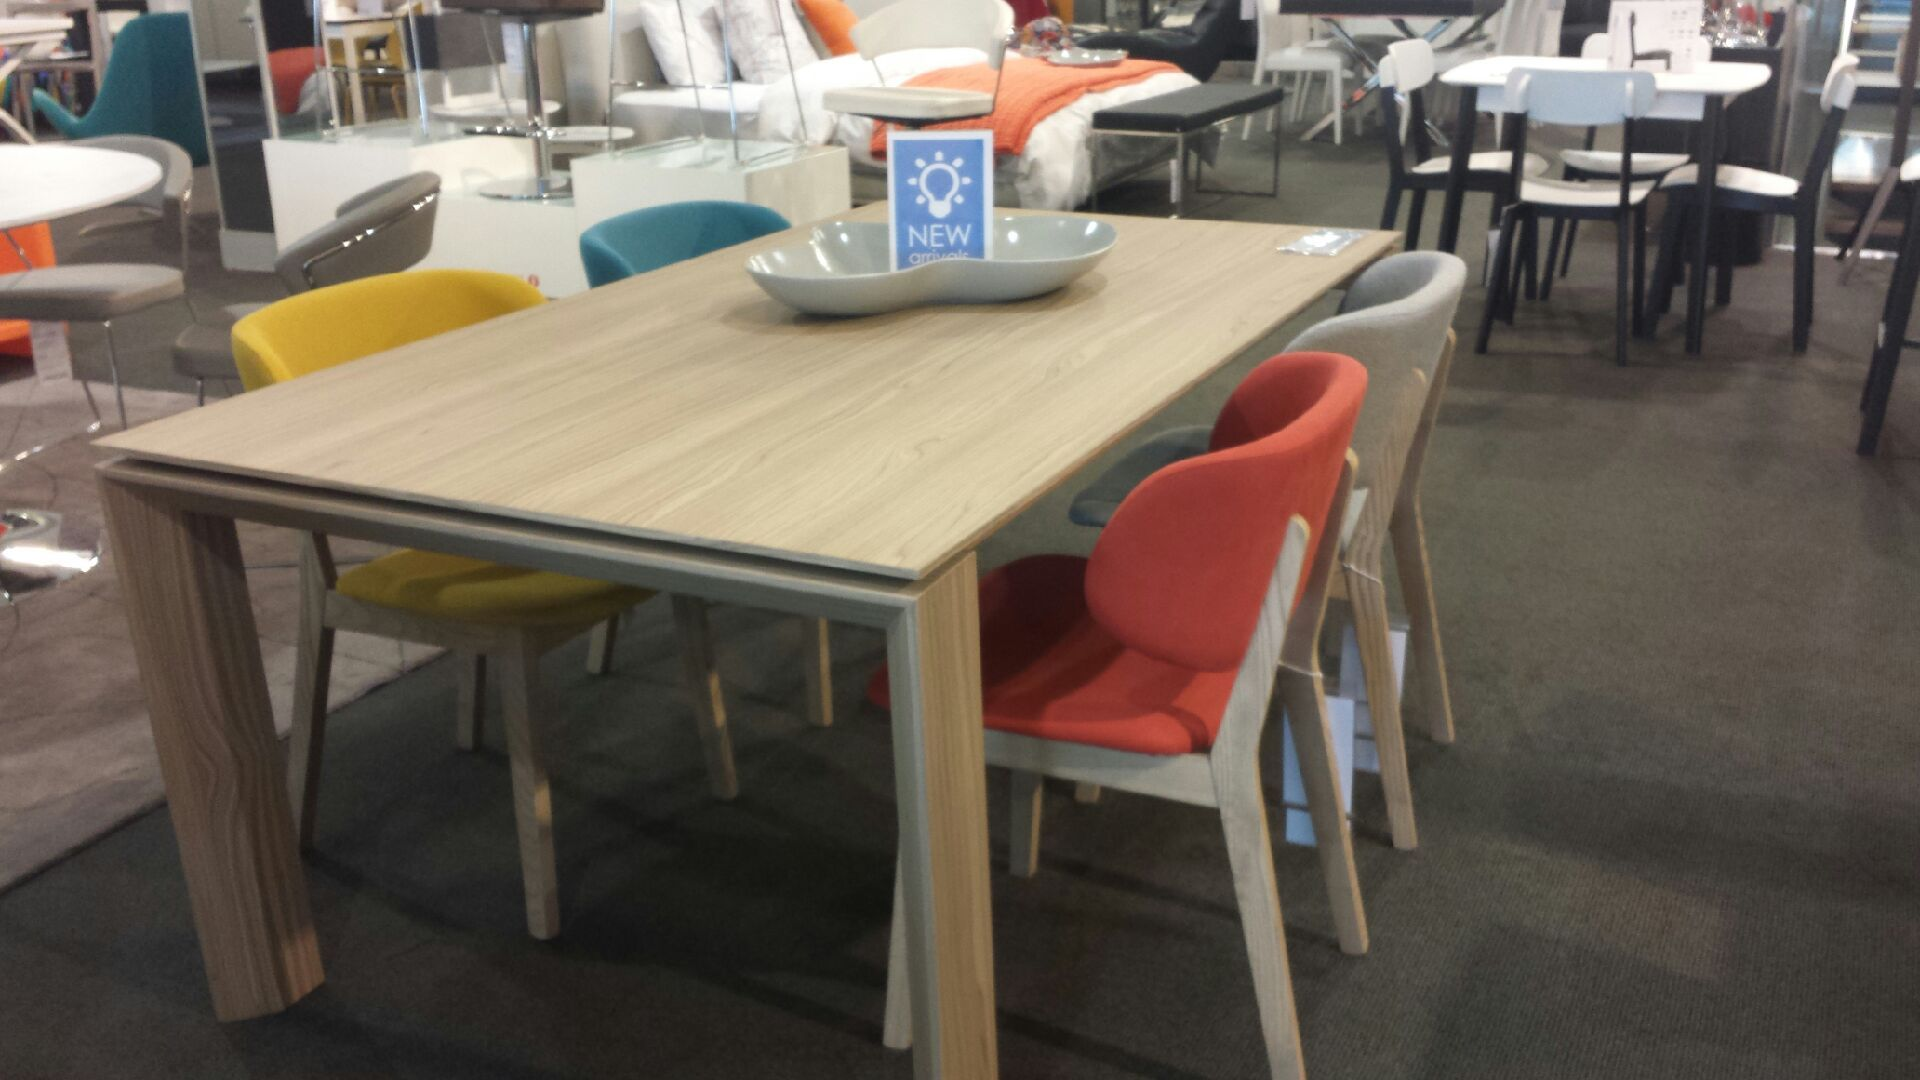 Tavolo omnia ~ Brand new calligaris omnia table in natural wood and the clare